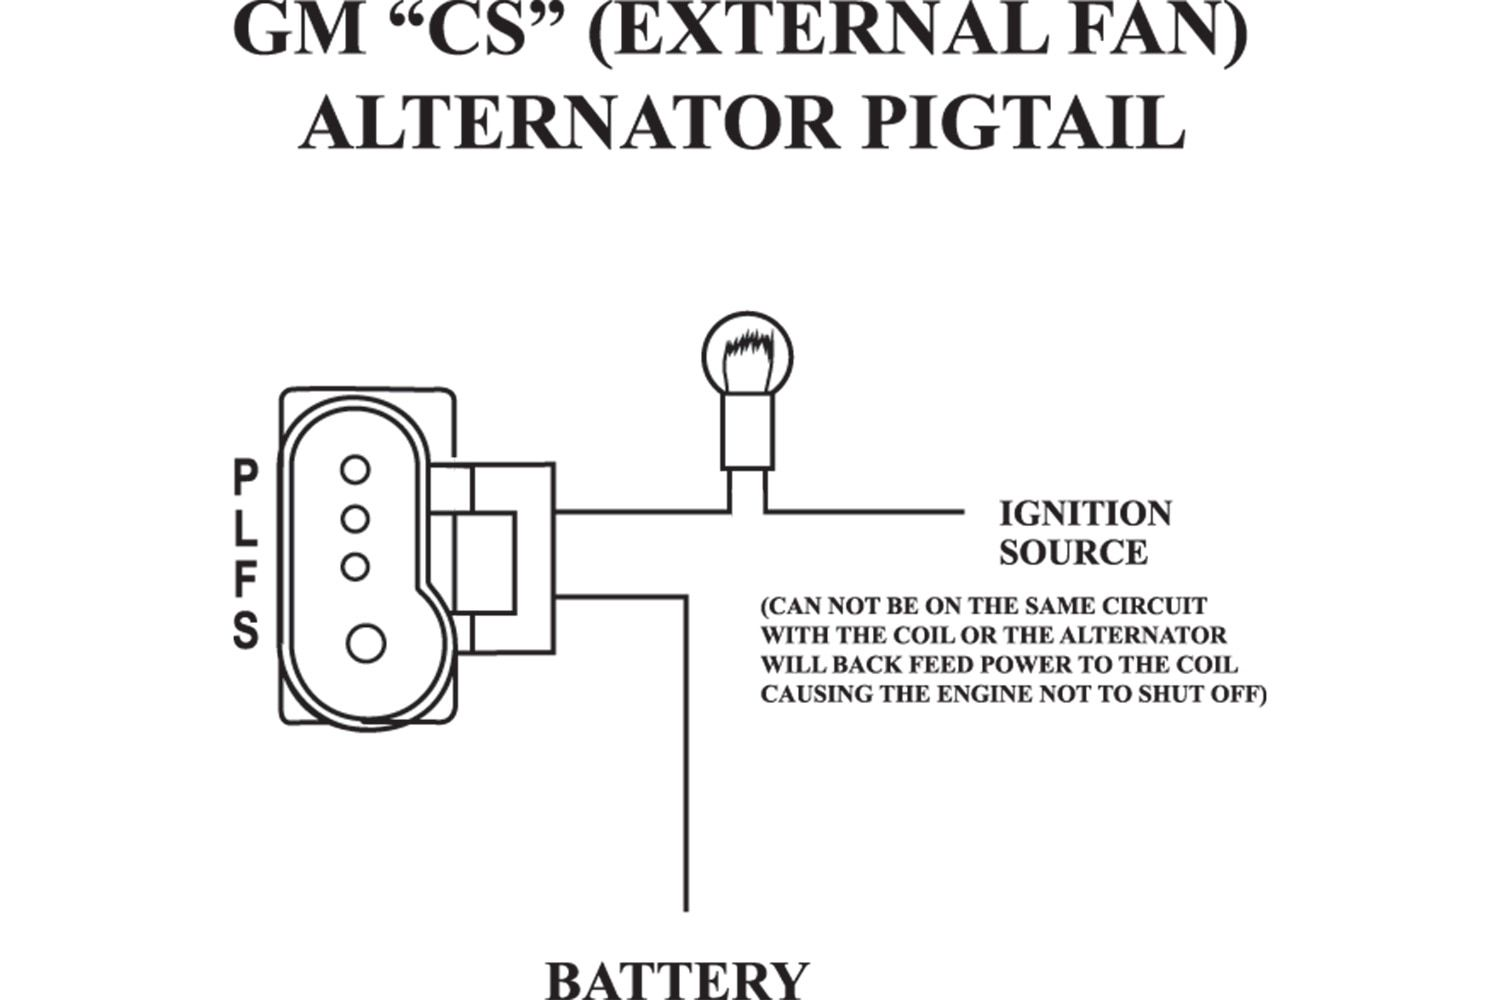 27 Ford Alternator Wiring Diagram Internal Regulator -  bookingritzcarlton.info | Alternator, Diagram design, DiagramPinterest